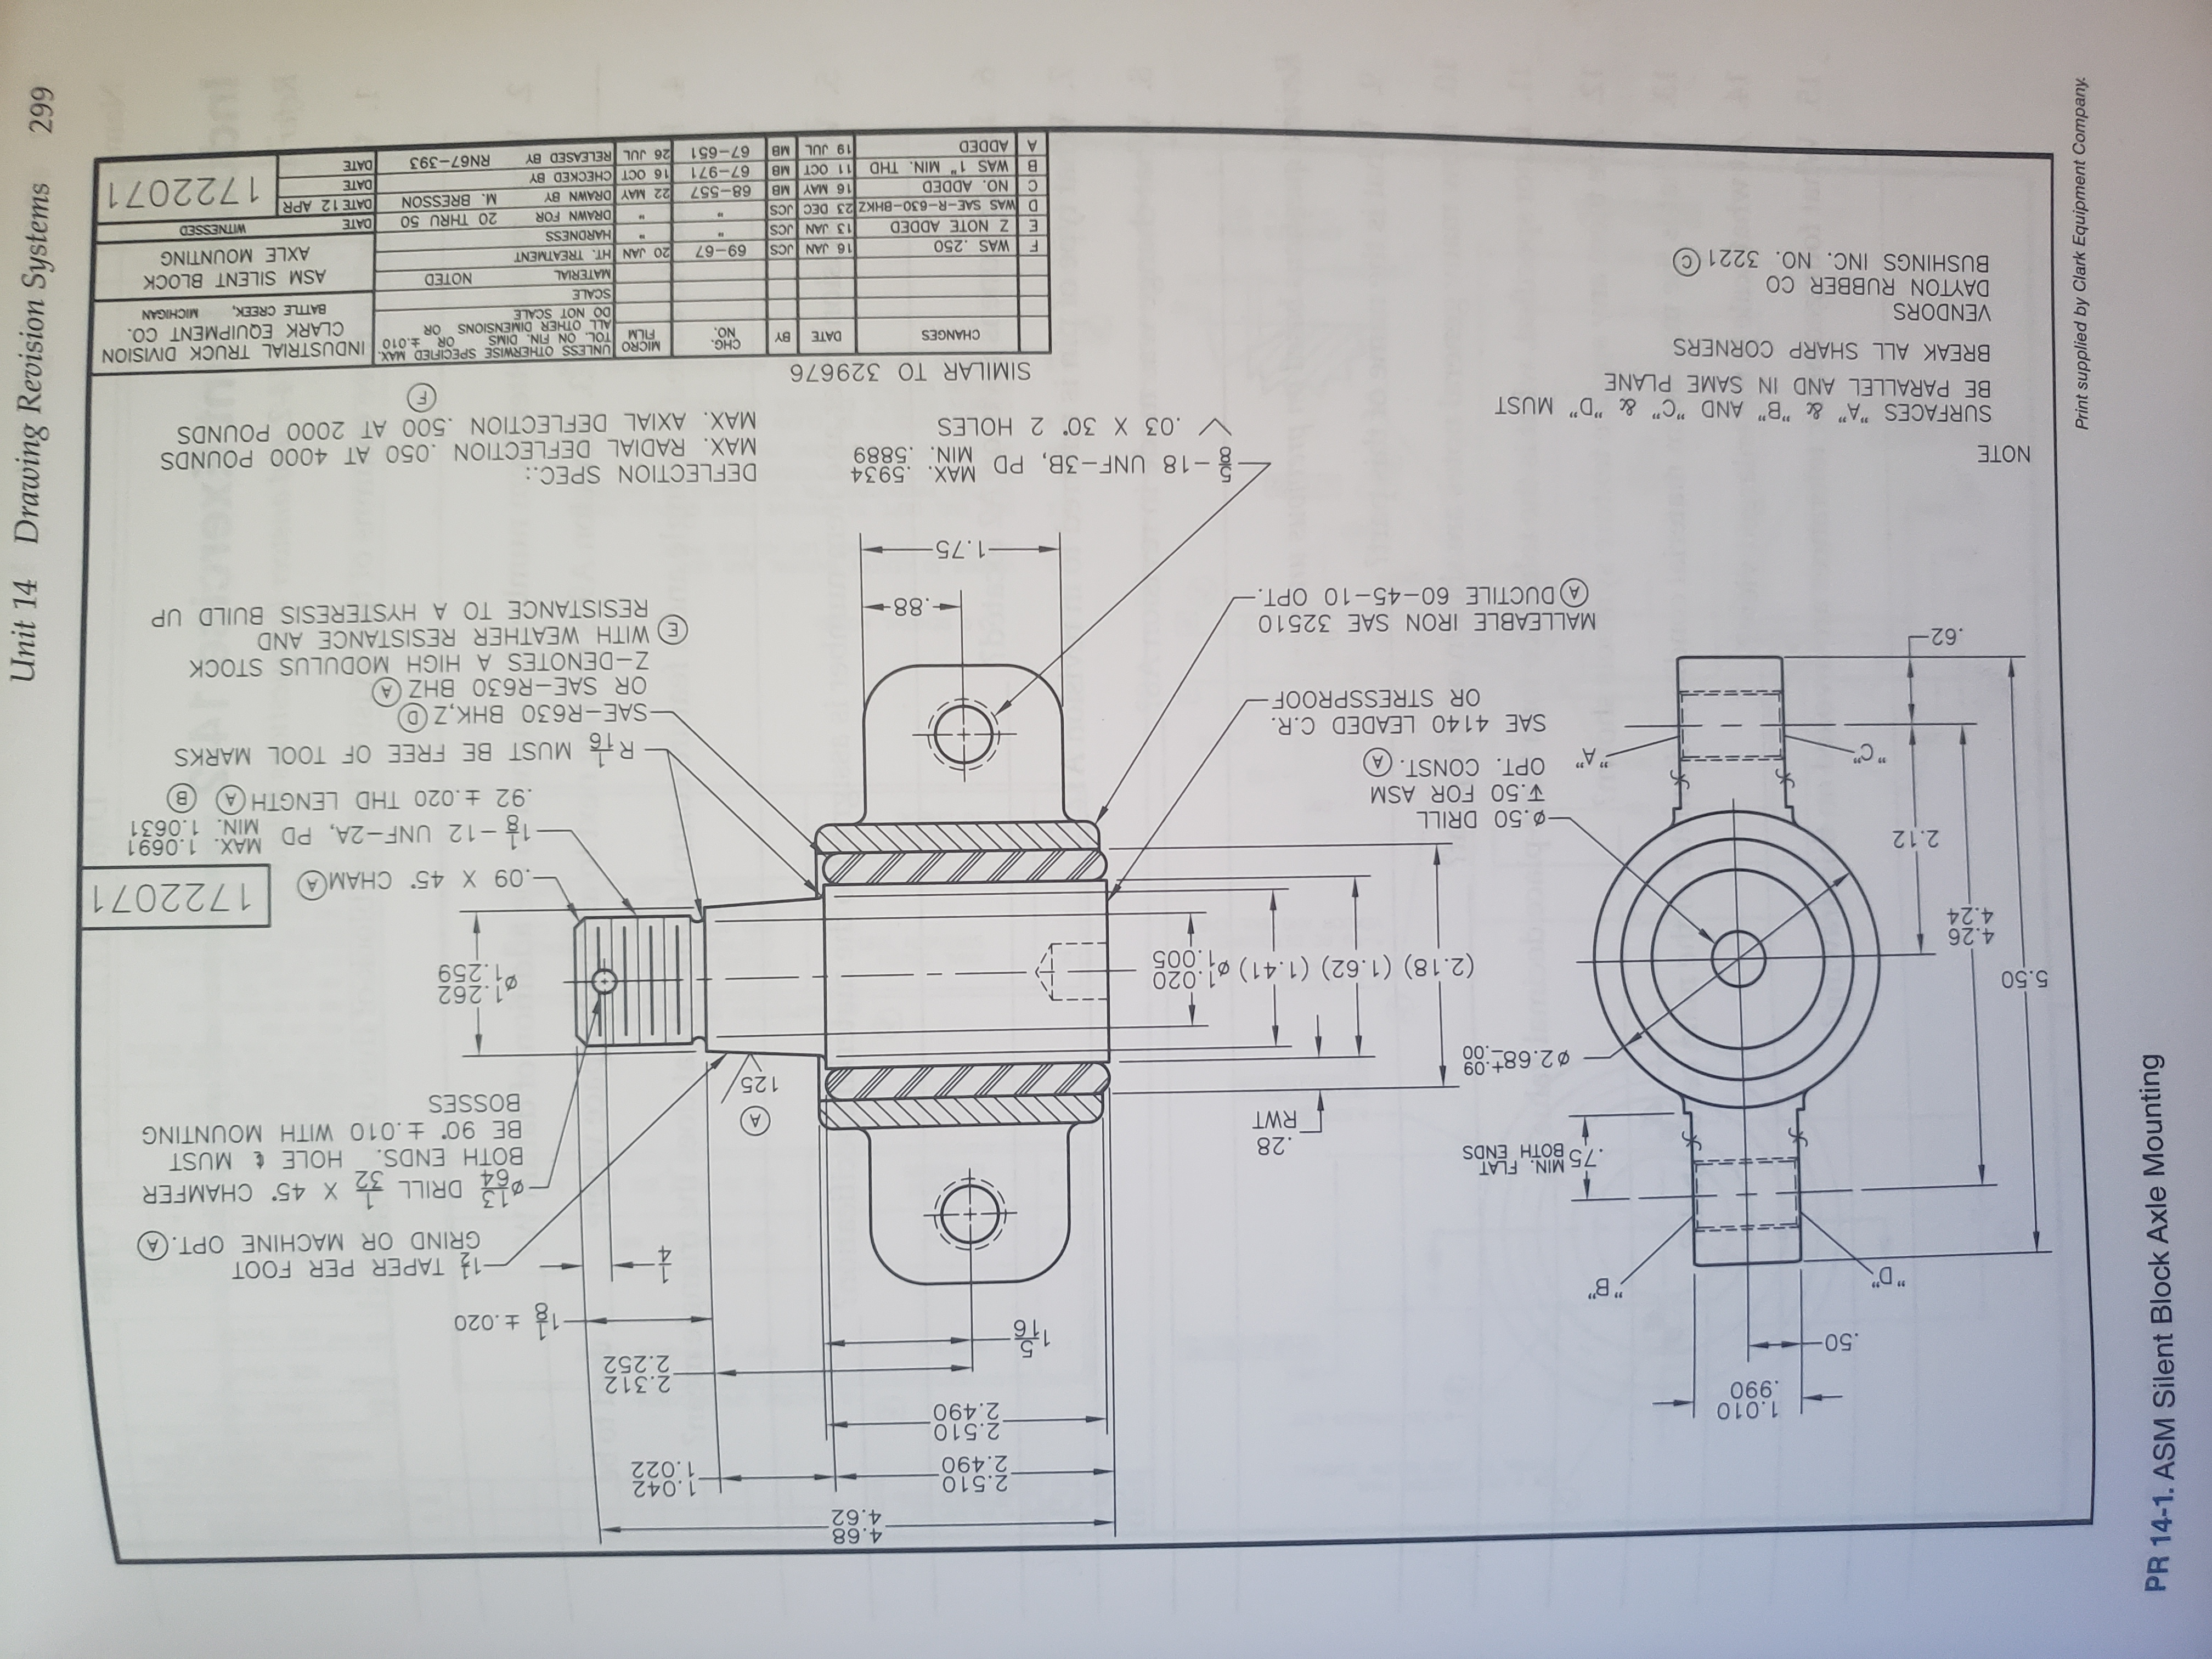 """Unit 14 Drawing Revision Systems 299 14 Print supplied by Clark Equipment Company PR 14-1. ASM Silent Block Axle Mounting 4.68 4.62 2.510. 2.490 2.510 2.490 1.042 1.022 1.010 2.312 2.252 0 -1 t.020 """" B"""" -12 TAPER PER FOOT GRIND OR MACHINE OPT.A MIN. FLAT .75 BOTH ENDS DDRILL X 45 CHAMFER 32 HOLE tMUST .28 RWT BOTH ENDS. BE 90 t.010 WITH MOUNTING BOSSES A 125 2.68+.09 000 5.50 (2.18) (1.62) (1.41) 1.005 1.262 1.259 4.26 4.24 1722071 .09 X 45 CHAMA 2.12 -0.50 DRILL V.50 FOR ASM OPT. CONST. 1-12 UNF-2A, PD .92 .020 THD LENGTH (A MAX. 1.0691 MIN. 1.0631 """"A"""" A - R MUST BE FREE OF TOOL MARKS -SAE-R630 BHK,Z D OR SAE-R630 BHZ A Z-DENOTESA HIGH MODULUS STOCK E WITH WEATHER RESISTANCE AND RESISTANCE TO A HYSTERESIS BUILD UP SAE 4140 LEADED C.R. OR STRESSPROOF .62 MALLEABLE IRON SAE 32510 A DUCTILE 60-45-10 OPT. +.88 -1.75- 18 UNF-3B, PD V.03 X 30 2 HOLES MAX. .5934 MIN. .5889 NOTE SURFACES """"A"""" & """"B"""" AND """"C"""" & """"D"""" MUST BE PARALLEL AND IN SAME PLANE DEFLECTION SPEC.: MAX. RADIAL DEFLECTION .050 AT 4000 POUNDS MAX. AXIAL DEFLECTION .500 AT 2000 POUNDS BREAK ALL SHARP CORNERS SIMILAR TO 329676 CHG. NO. MICRO UNLESS OTHERWISE SPECIFIED MAX. FILM OR 010 INDUSTRIAL TRUCK DIVISION CLARK EQUIPMENT CO. CHANGES DATE BY VENDORS DAYTON RUBBER CO BUSHINGS INC. NO. 3221 C TOL. ON FIN. DIMS ALL OTHER DIMENSIONS DO NOT SCALE SCALE MATERIAL BATTLE CREEK, MICHIGAN NOTED ASM SILENT BLOCK 20 JAN HT. TREATMENT WAS .250 Z NOTE ADDED D WAS SAE-R-630-BHKZ 23 DEC JCS CNO. ADDED WAS 1 MIN. THD A ADDED 16 JAN JCS AXLE MOUNTING 13 JAN JCS HARDNESS 20 THRU 50 M. BRESSON DATE DATE 12 APR DATE DATE DRAWN FOR 68-557 67-971 67-651 22 MAY DRAWN BY 16 OCT CHECKED BY 26 JUL RELEASED BY 16 MAY MB 1722071 11 OCT MB RN67-393"""